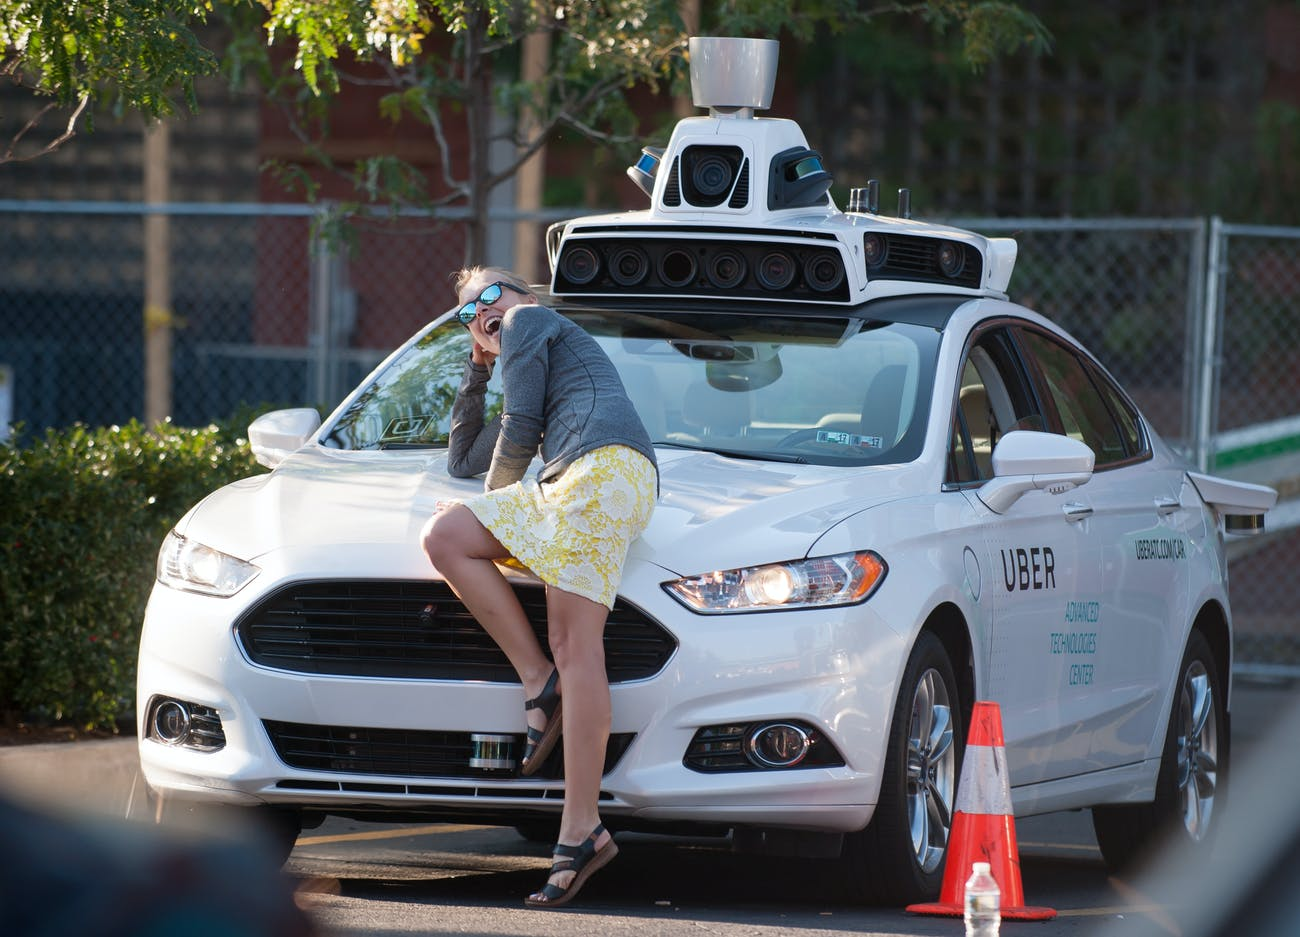 PITTSBURGH, PA - SEPTEMBER 22: A woman poses with an Uber driverless Ford Fusion as it sits in the Uber Technical Center parking lot on September, 22, 2016 in Pittsburgh, Pennsylvania. Uber has built its Uber Technical Center in Pittsburgh and is developing an autonomous vehicle that it hopes will be able to transport its millions of clients without the need for a driver. (Photo by Jeff Swensen/Getty Images)